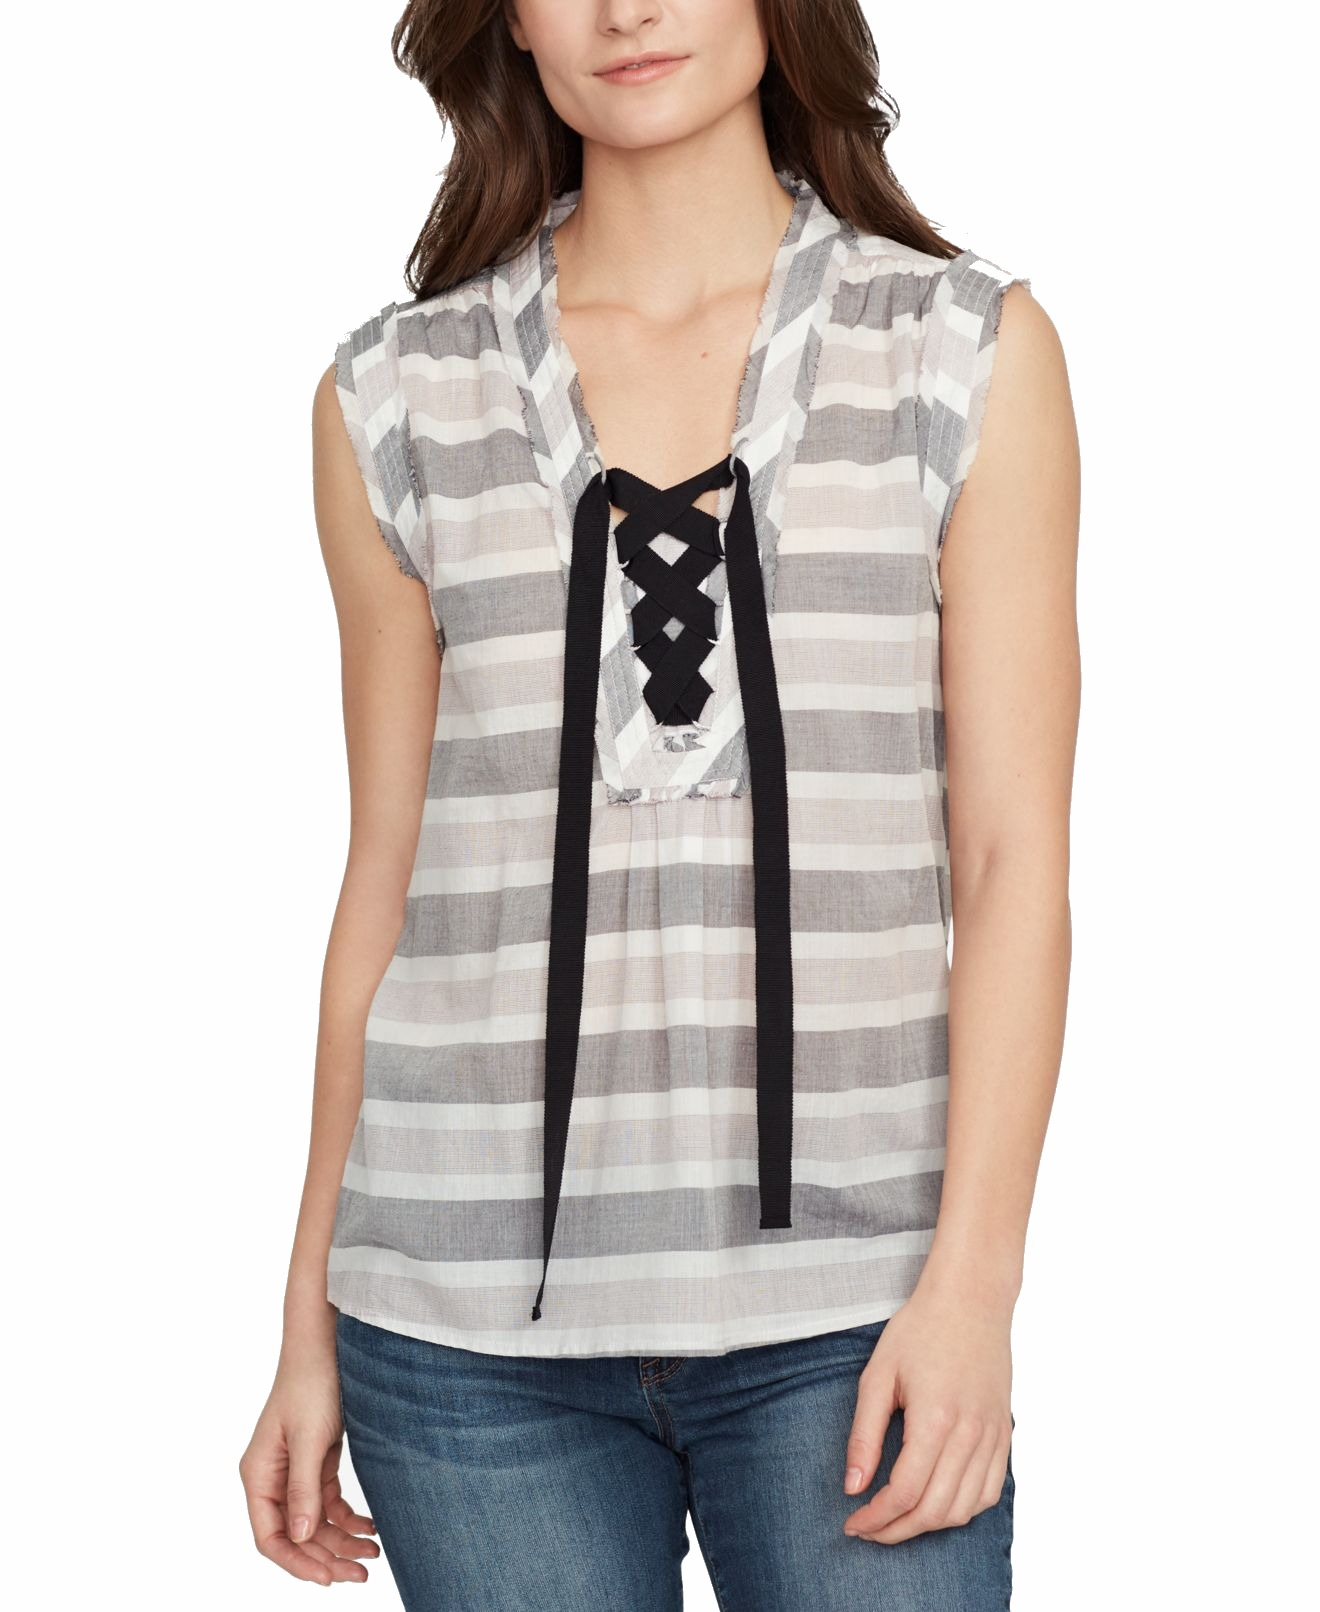 William-Rast-Pink-Gray-Women-039-s-Size-Medium-M-Striped-Lace-Up-Blouse